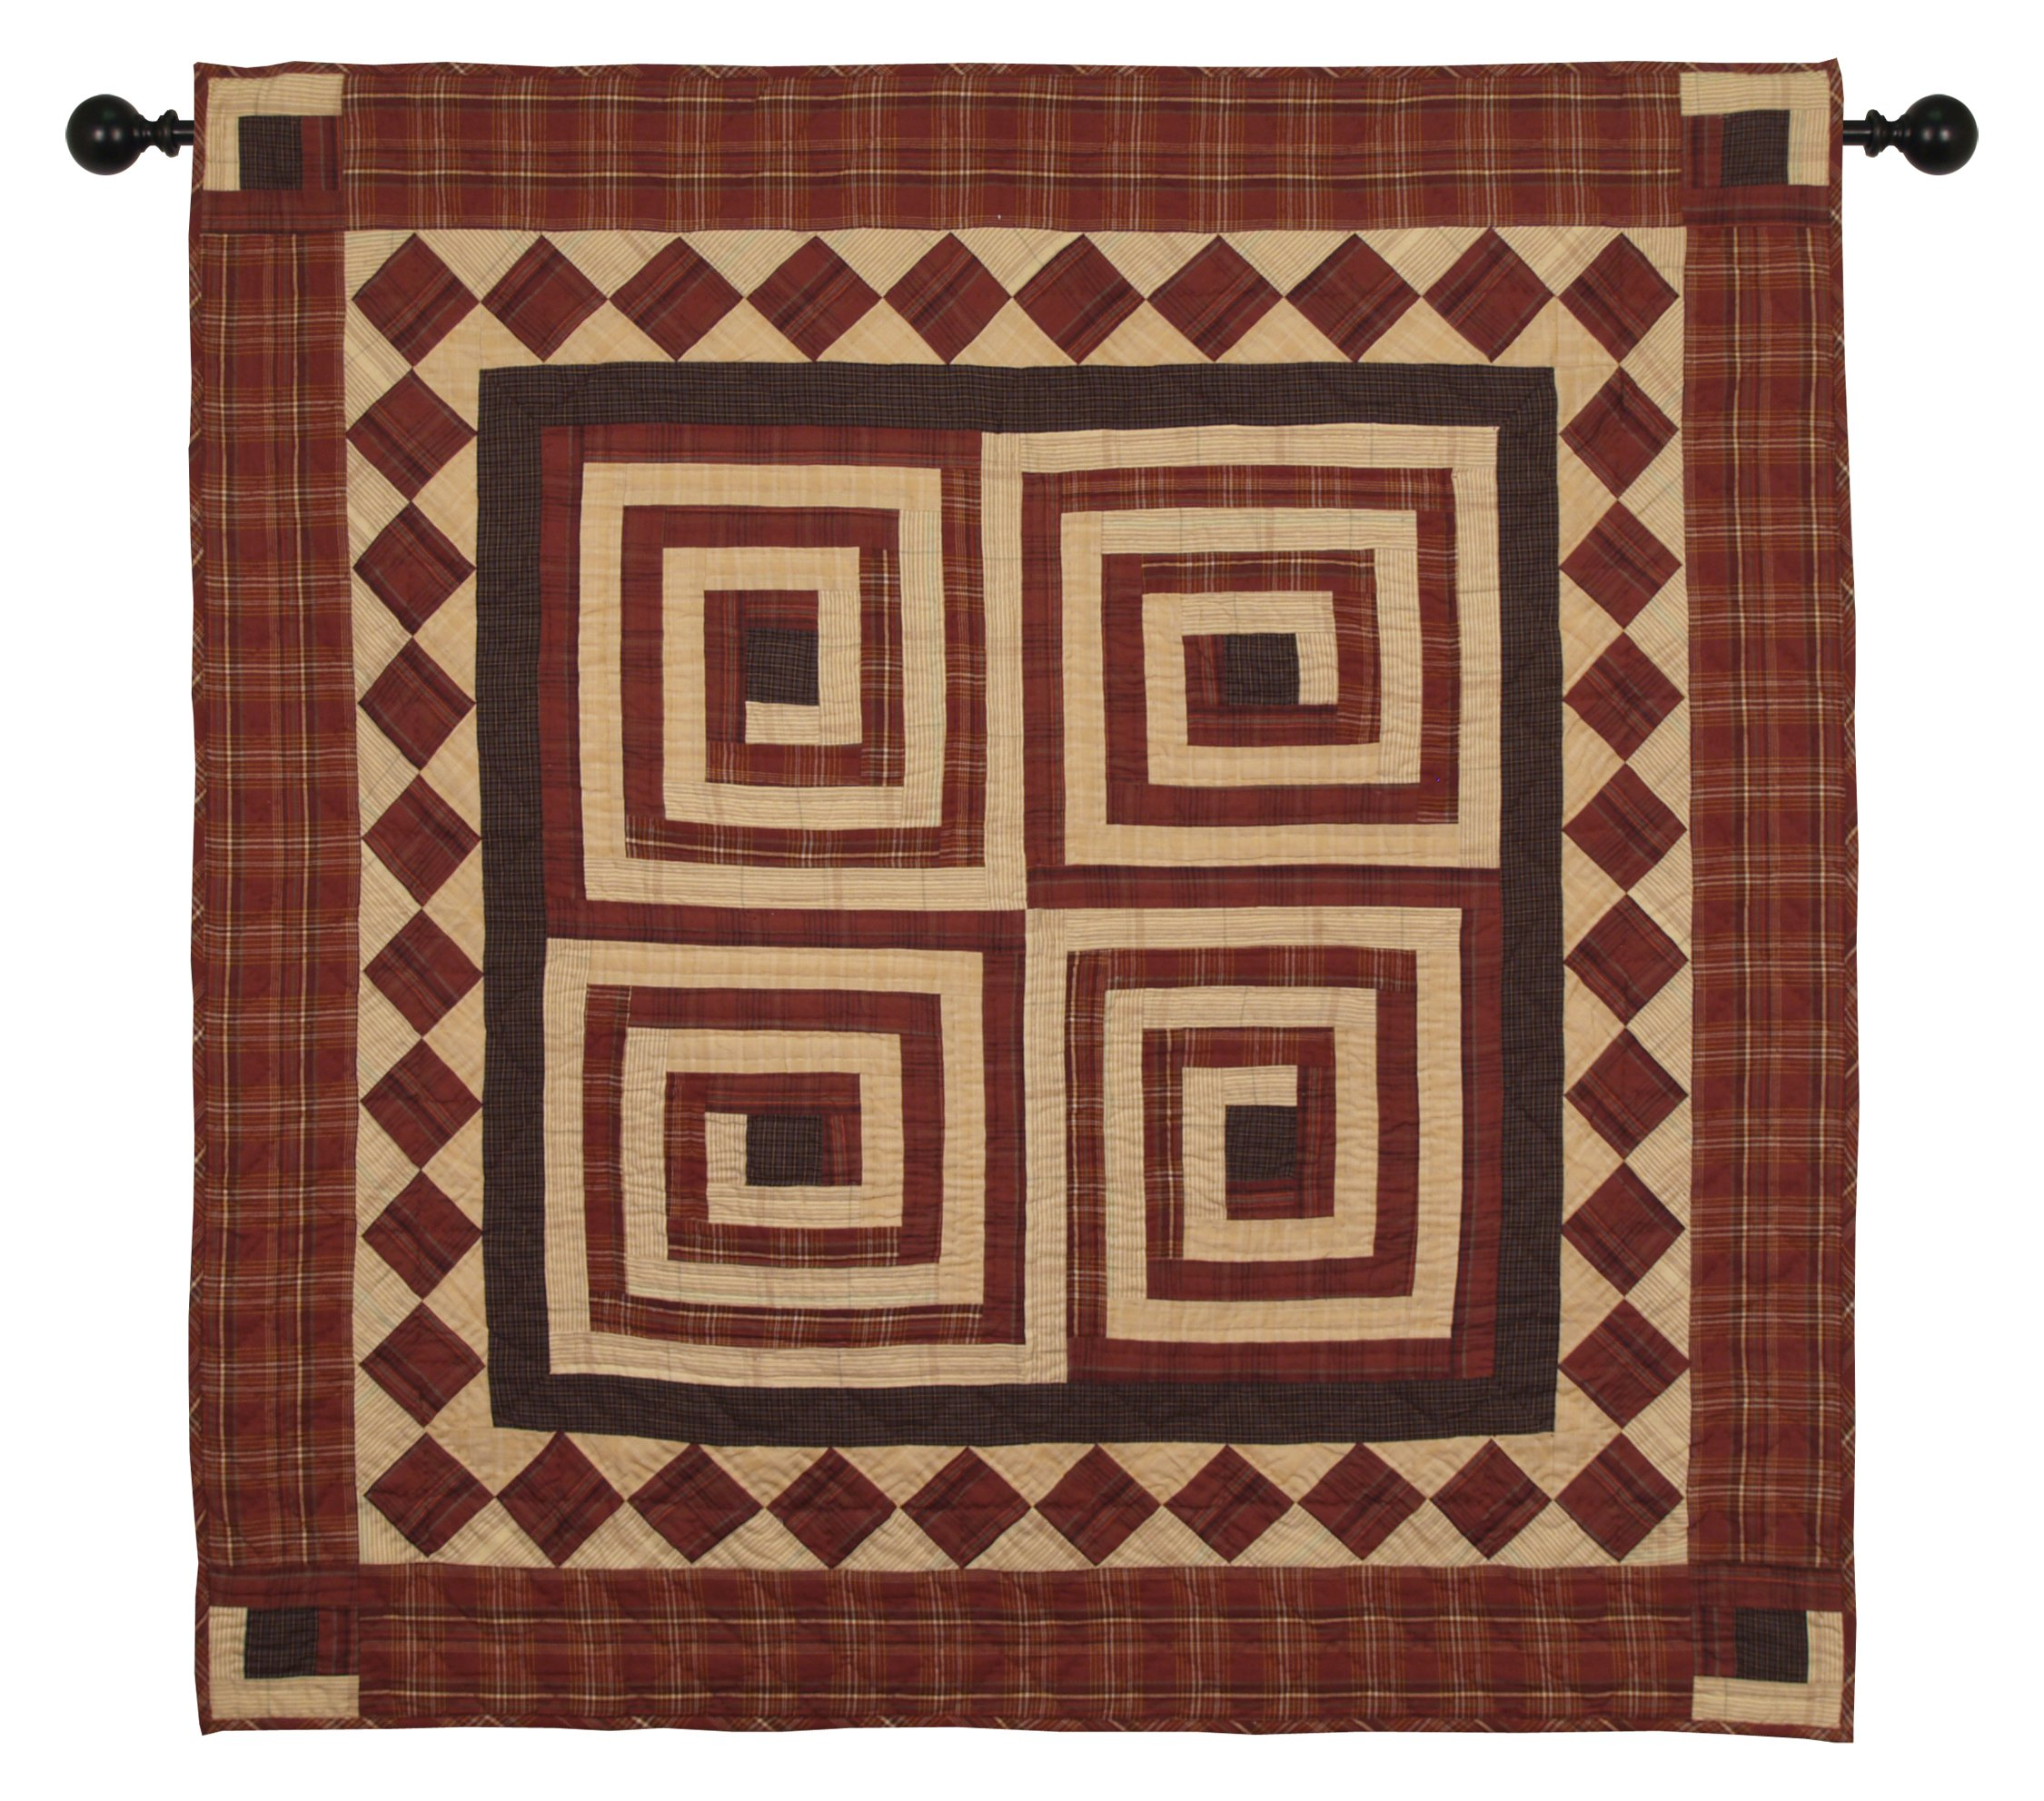 Log Cabin Burgundy Wall Hanging Quilt 44 Inches by 44 Inches 100% Cotton Handmade Hand Quilted Heirloom Quality by Choices Quilts